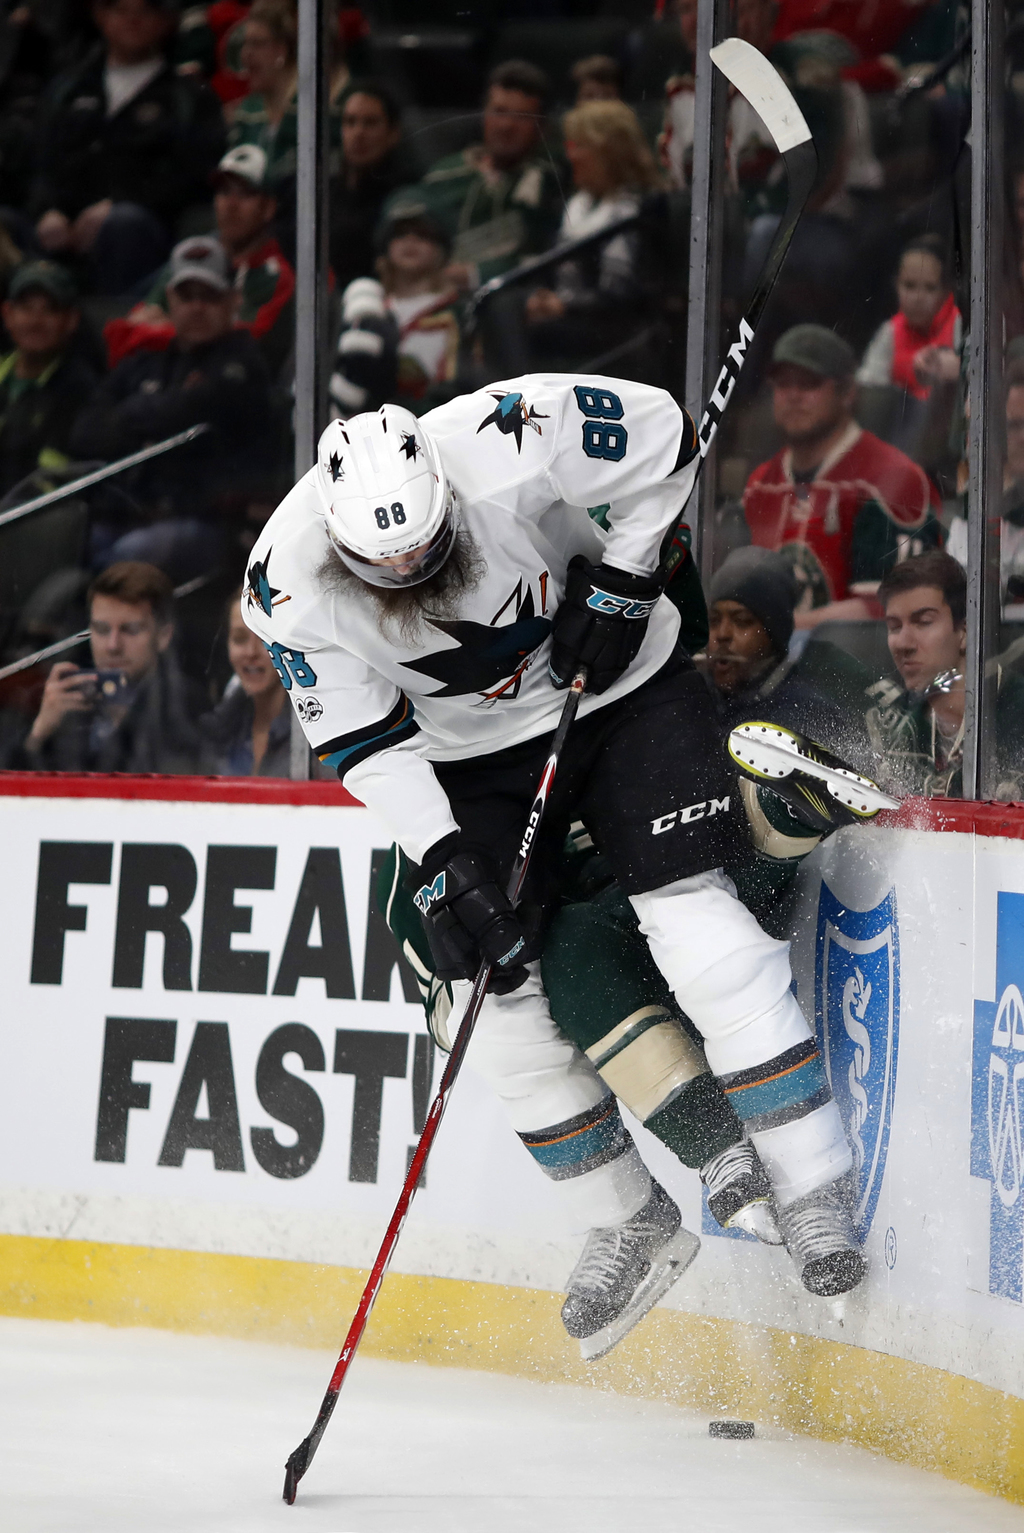 San Jose Sharks defenseman Brent Burns (88) checks Minnesota Wild left wing Zach Parise into the boards as they both pursue the puck in...